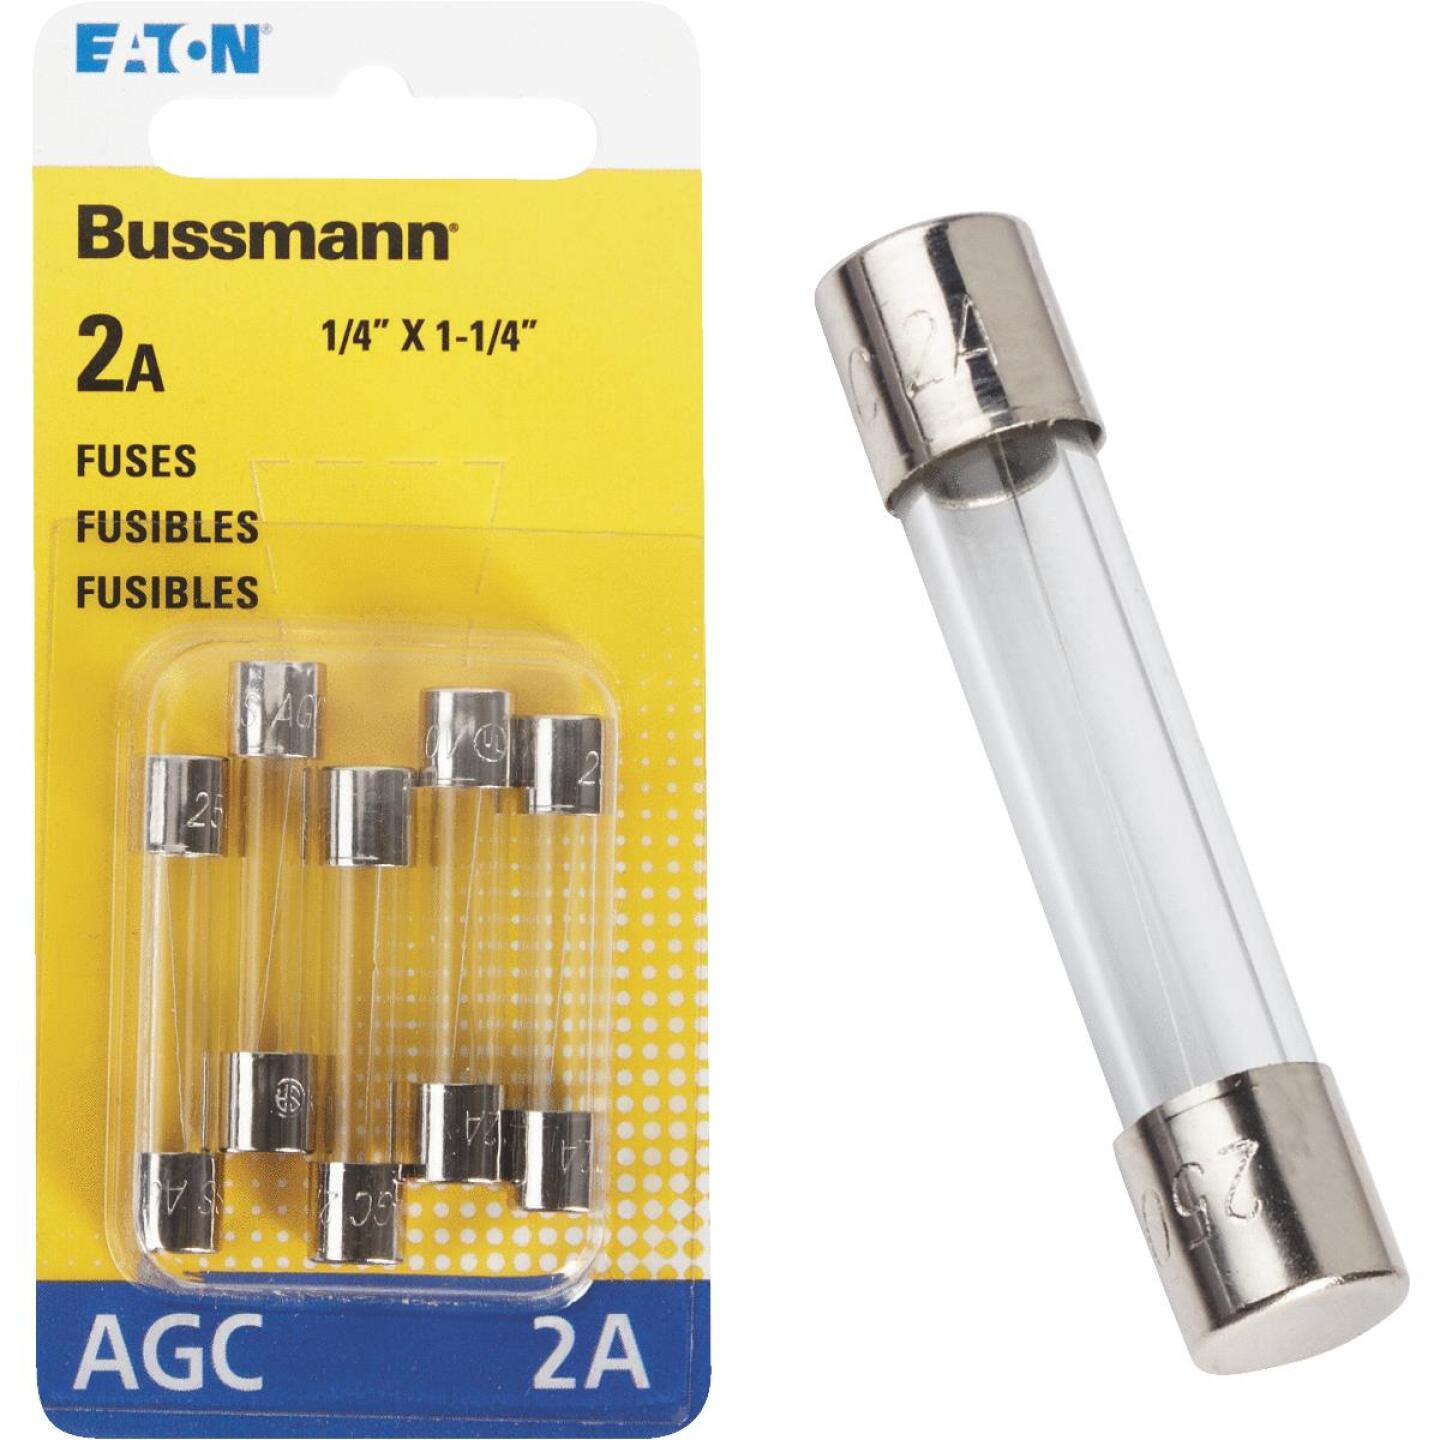 Bussmann 2-Amp 250-Volt AGC Glass Tube Automotive Fuse (5-Pack) Image 1